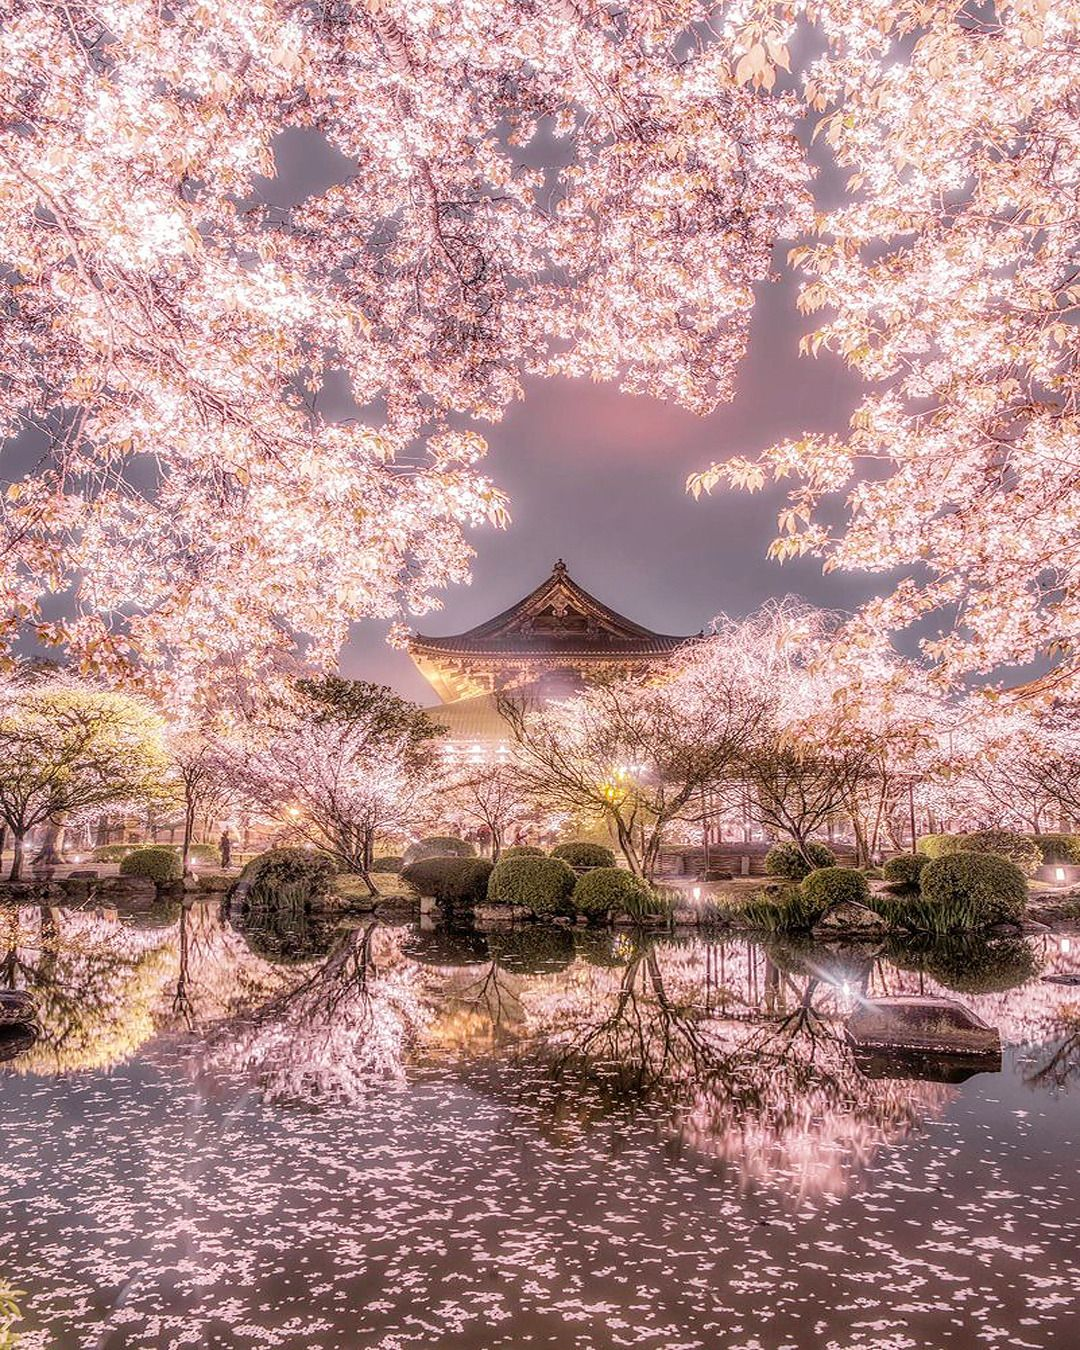 Pin By Poppy Mcnicholas On Cherry Blossoms Cherry Blossom Japan Beautiful Landscapes Scenery